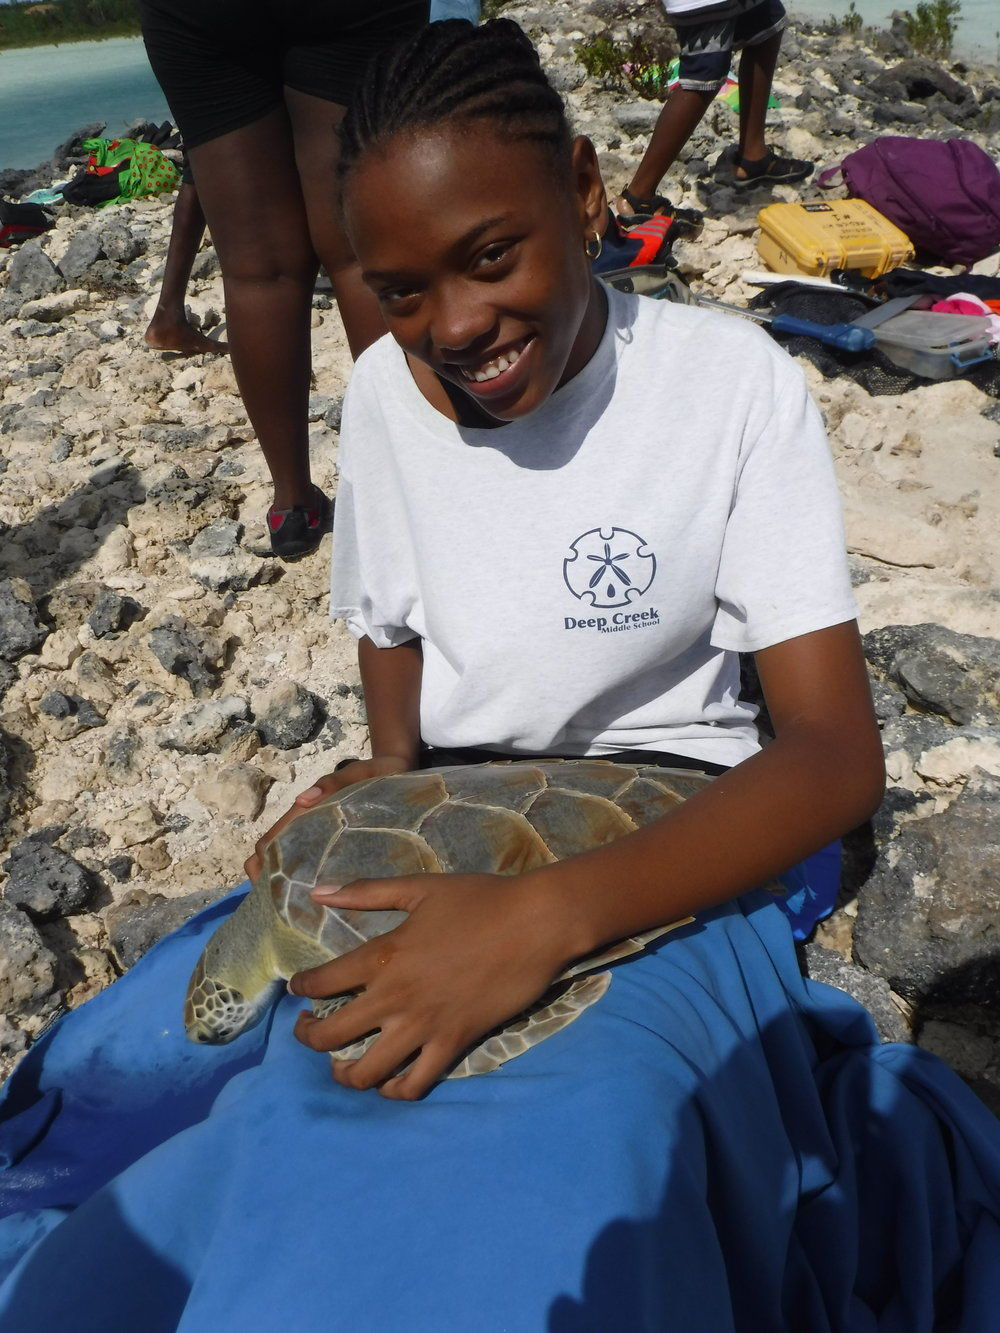 A student from Deep Creek Middle School assisting with the turtle workup.